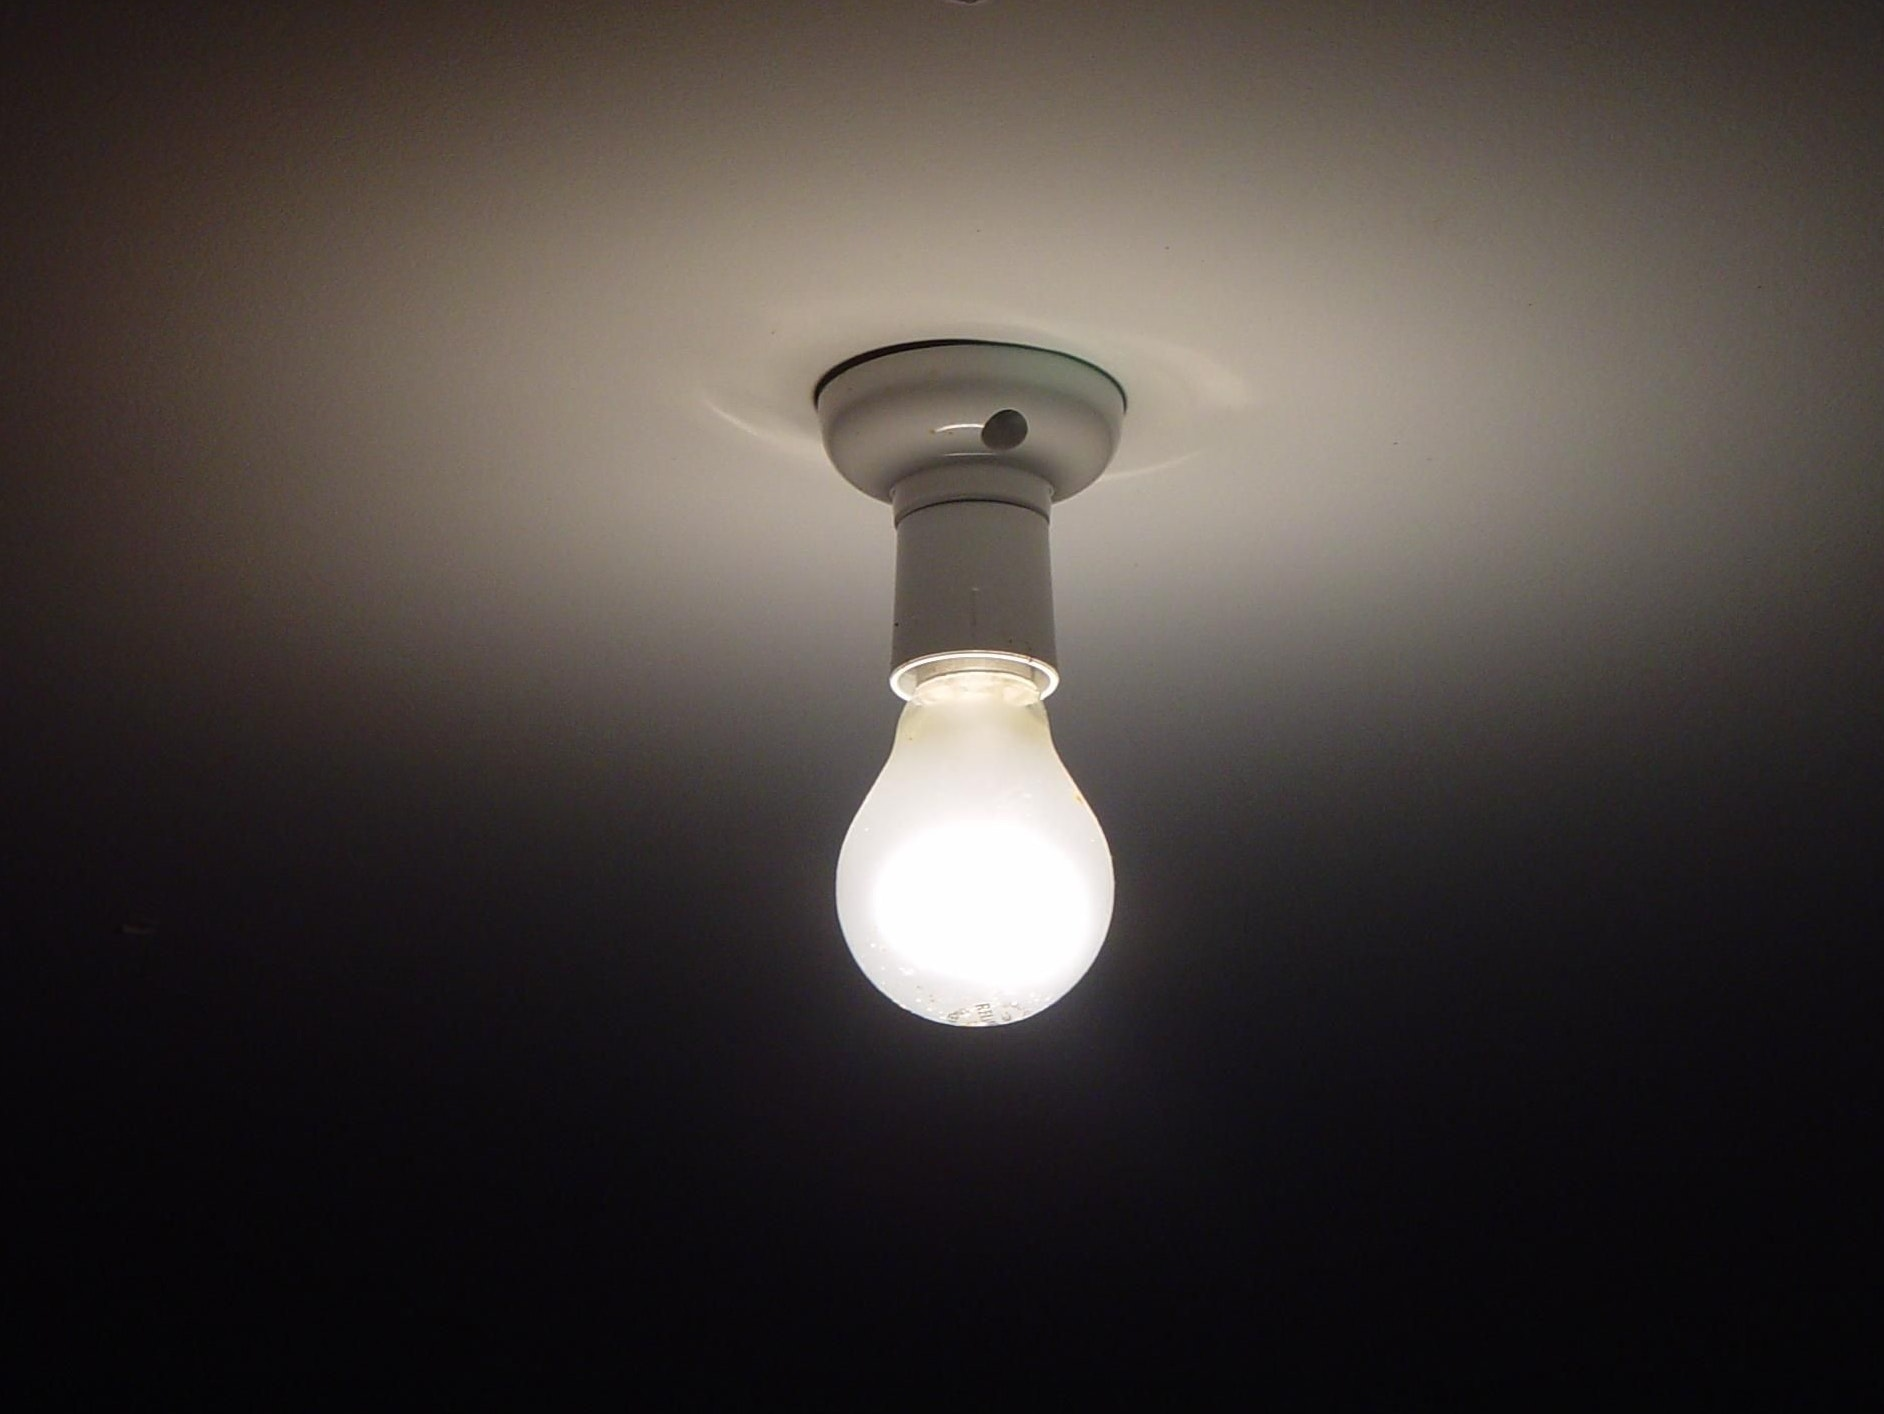 Want to Seem Like a Genius? Talk About Light Bulbs a Lot